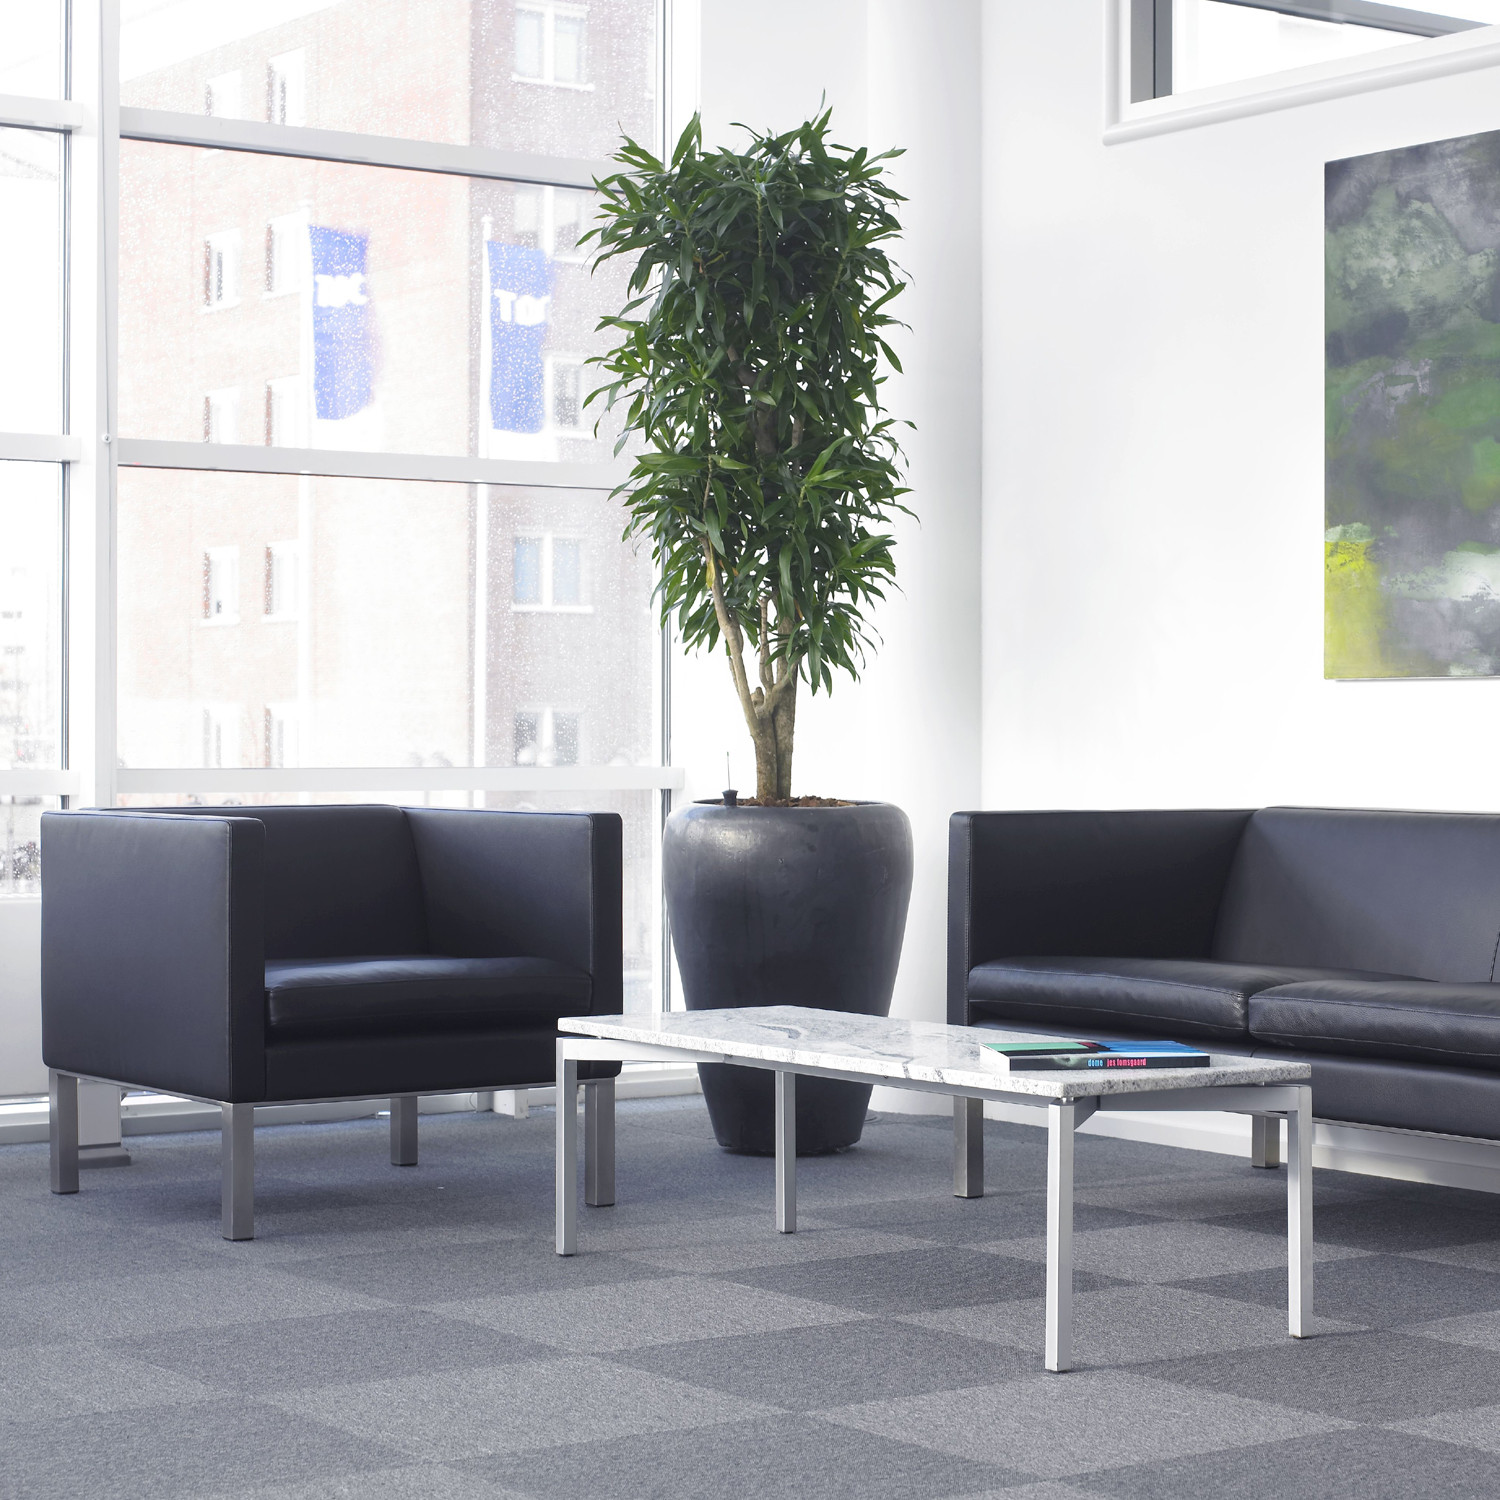 EJ 51 Office Armchairs